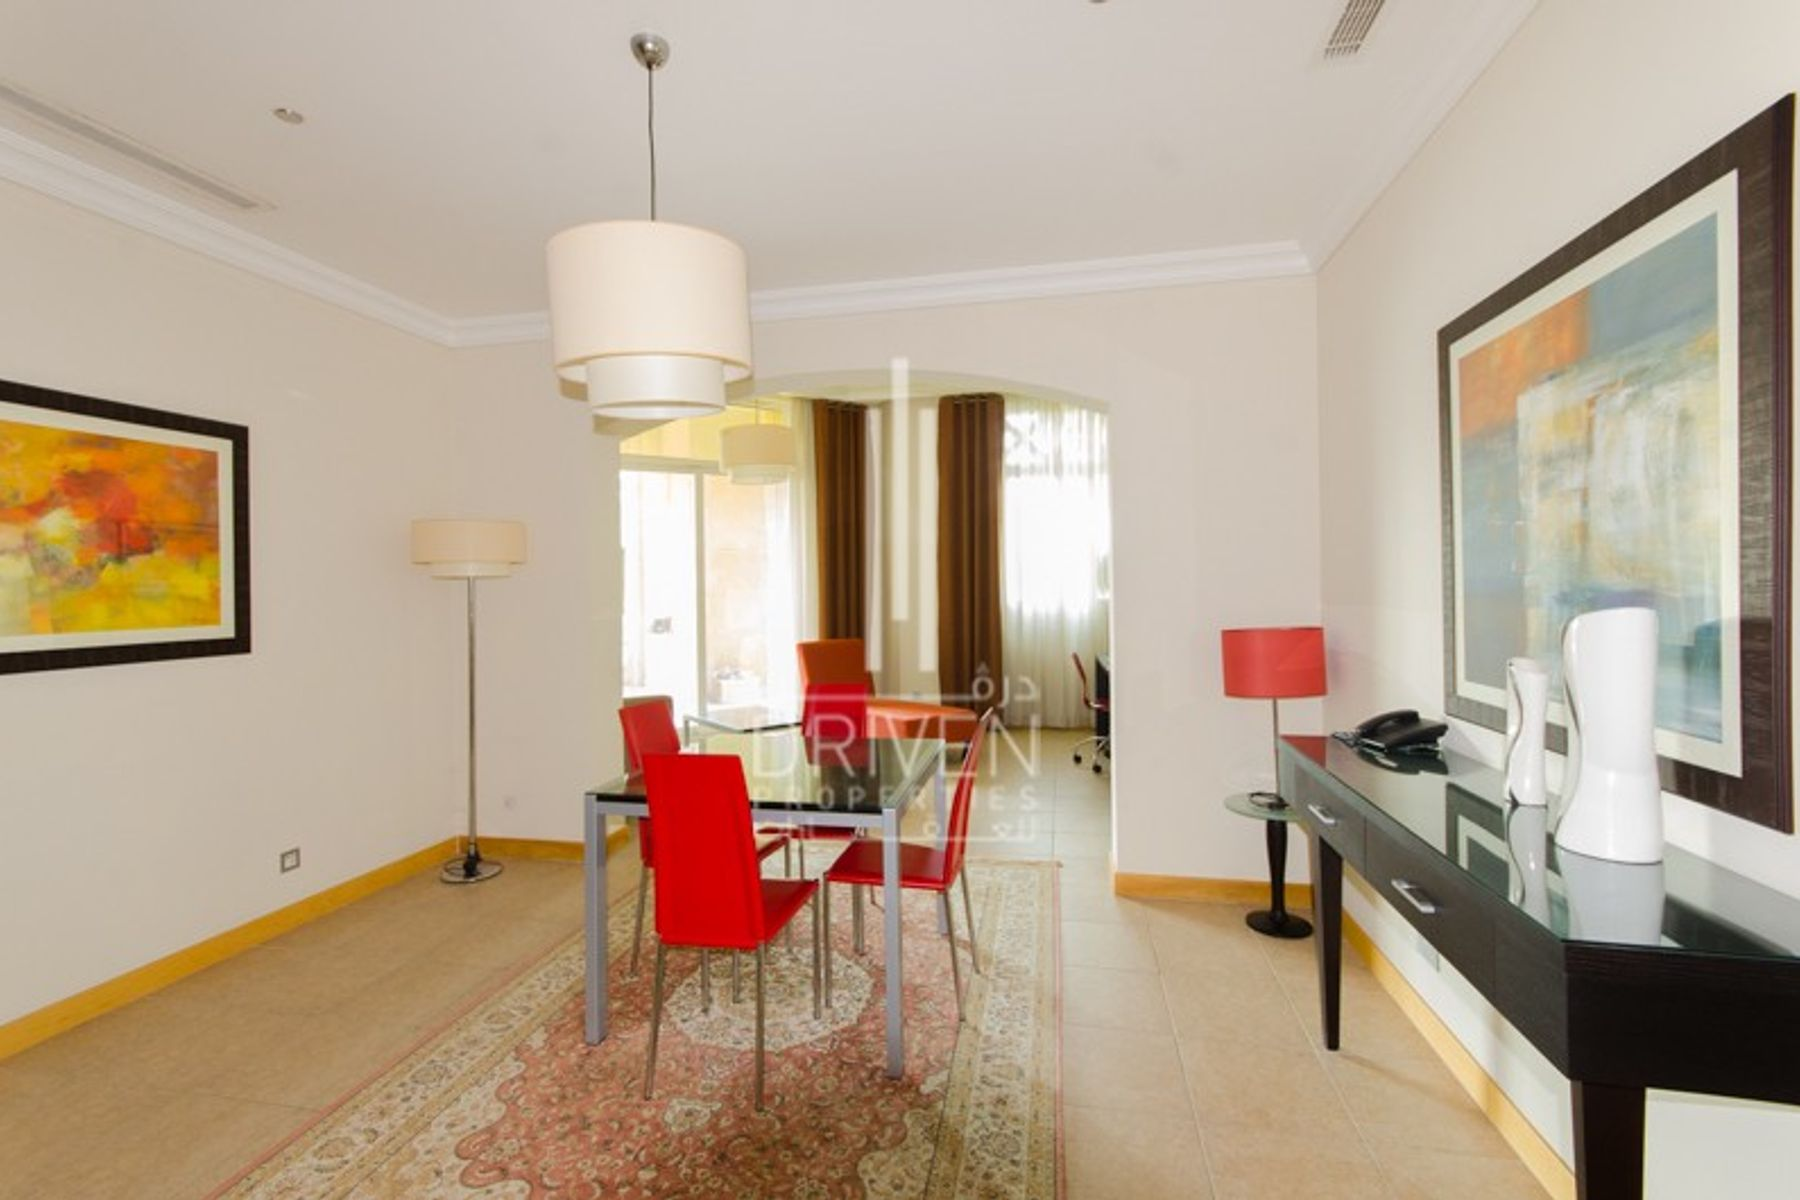 Apartment for Sale in Al Nabat - Palm Jumeirah